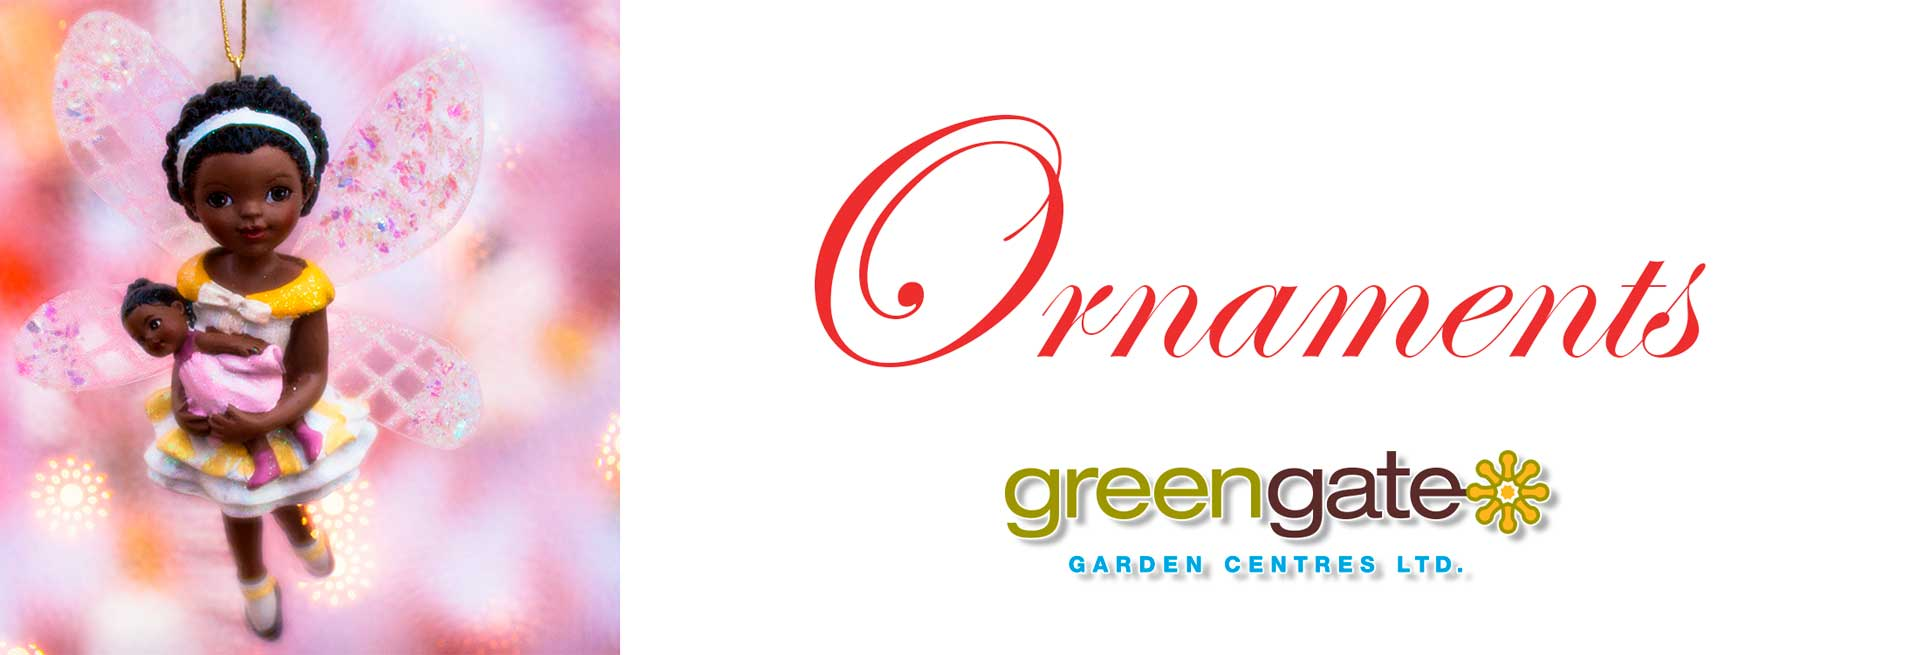 Christmas Ornanaments at greengate